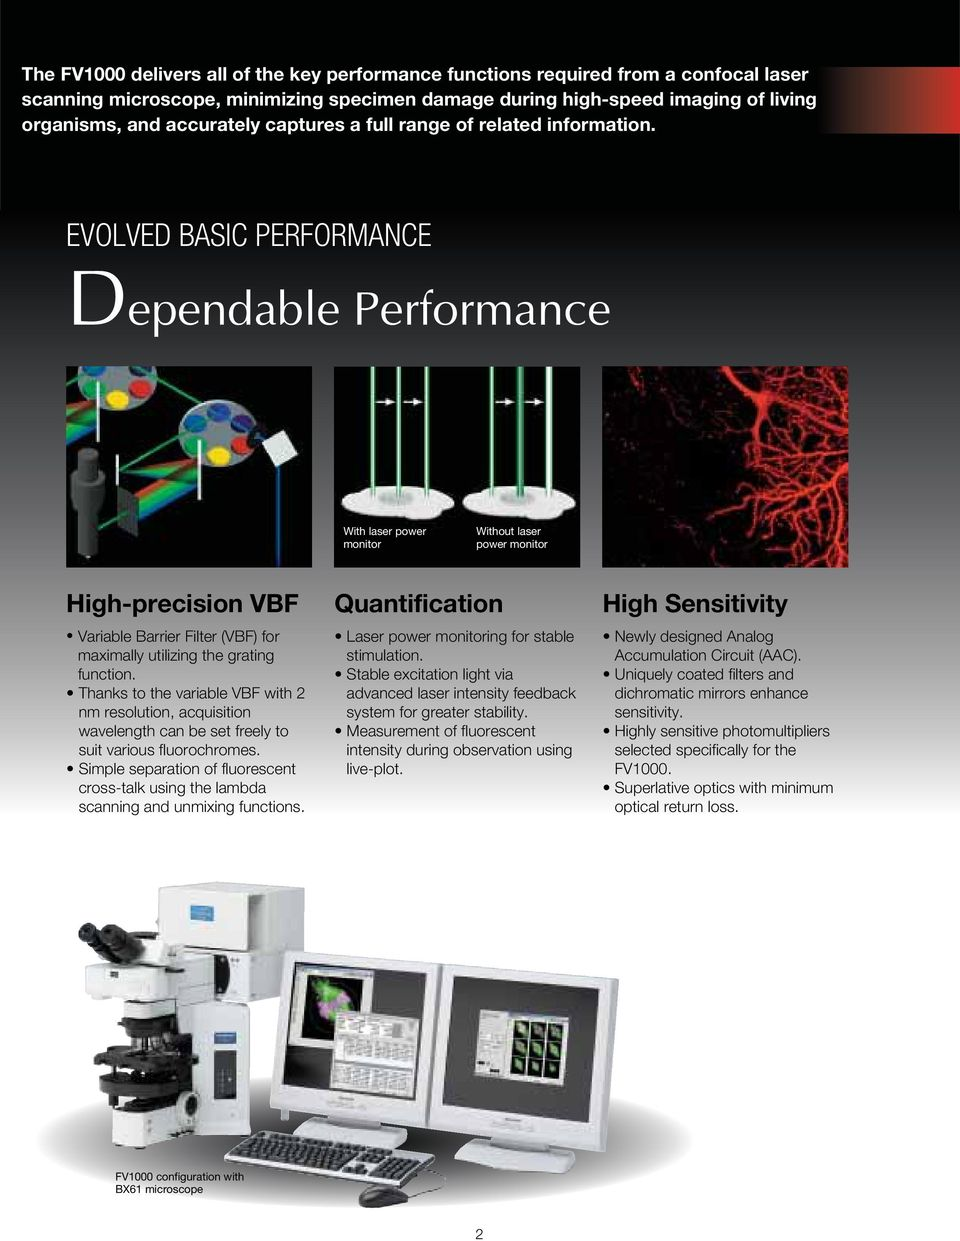 EVOLVED BASIC PERFORMANCE Dependable Performance With laser power monitor Without laser power monitor High-precision VBF Variable Barrier Filter (VBF) for maximally utilizing the grating function.